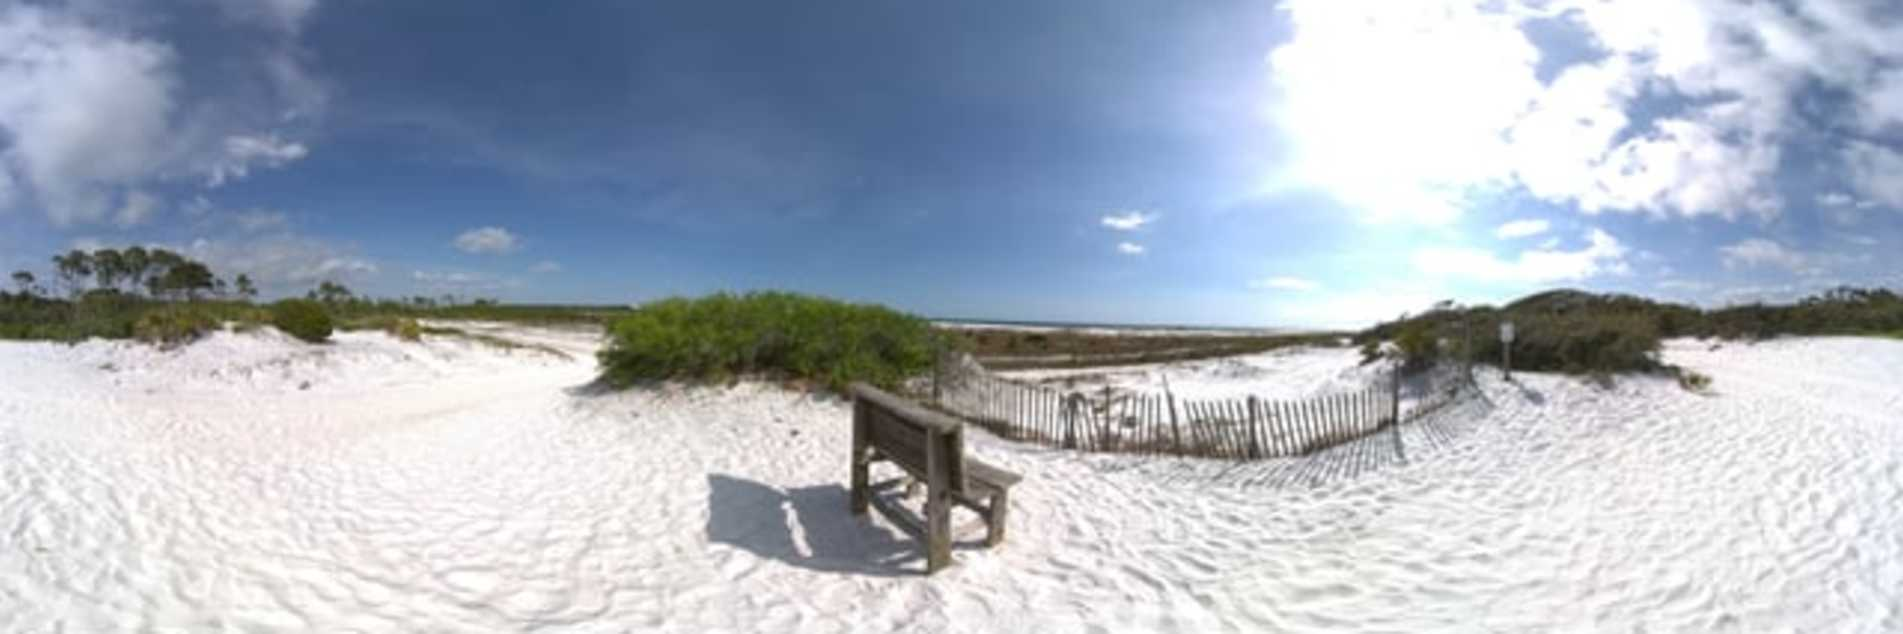 Camp Helen State Park | Parks in Panama City Beach, FL